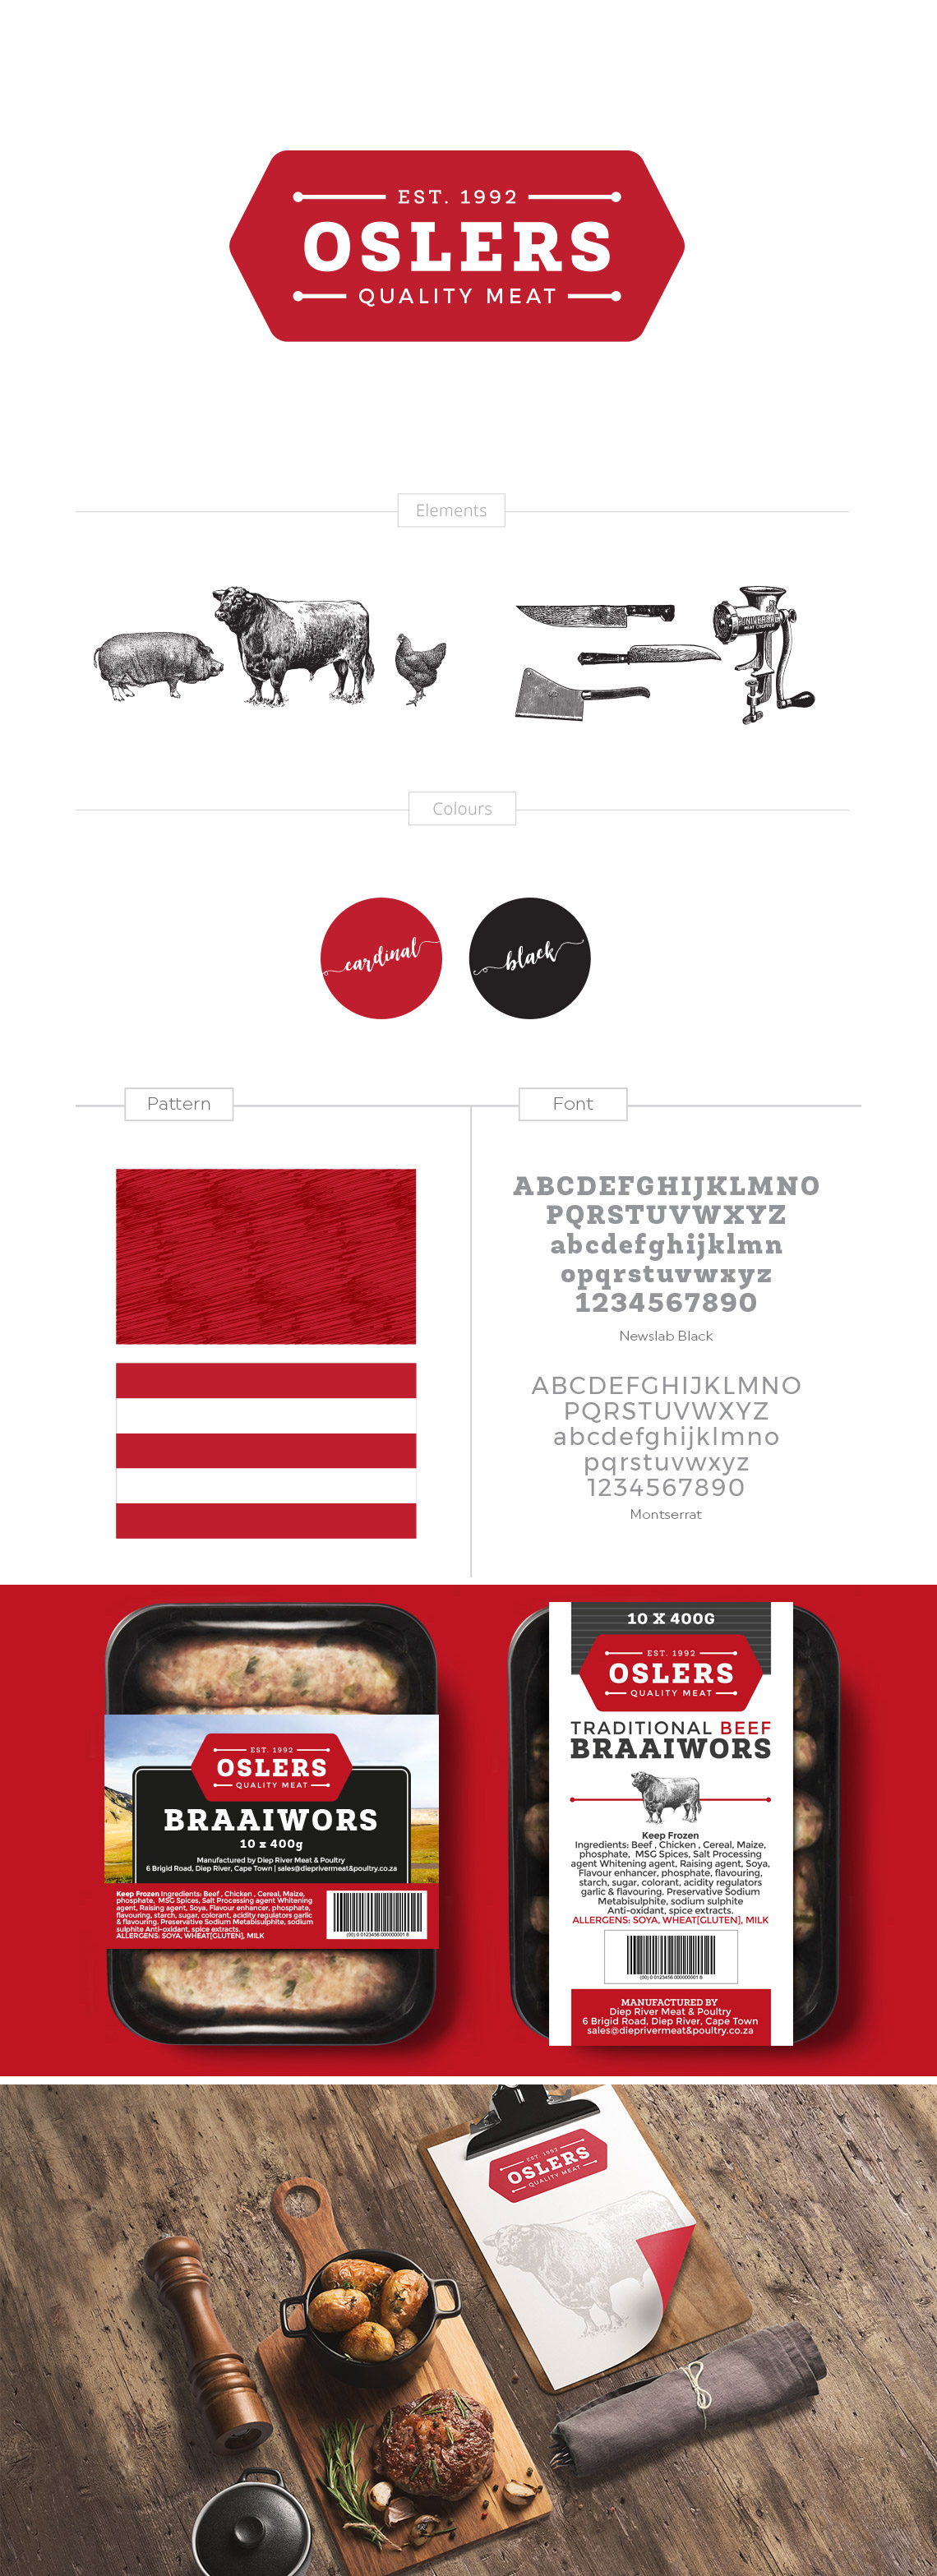 Logo and Packaging Design Oslers Quality Meat